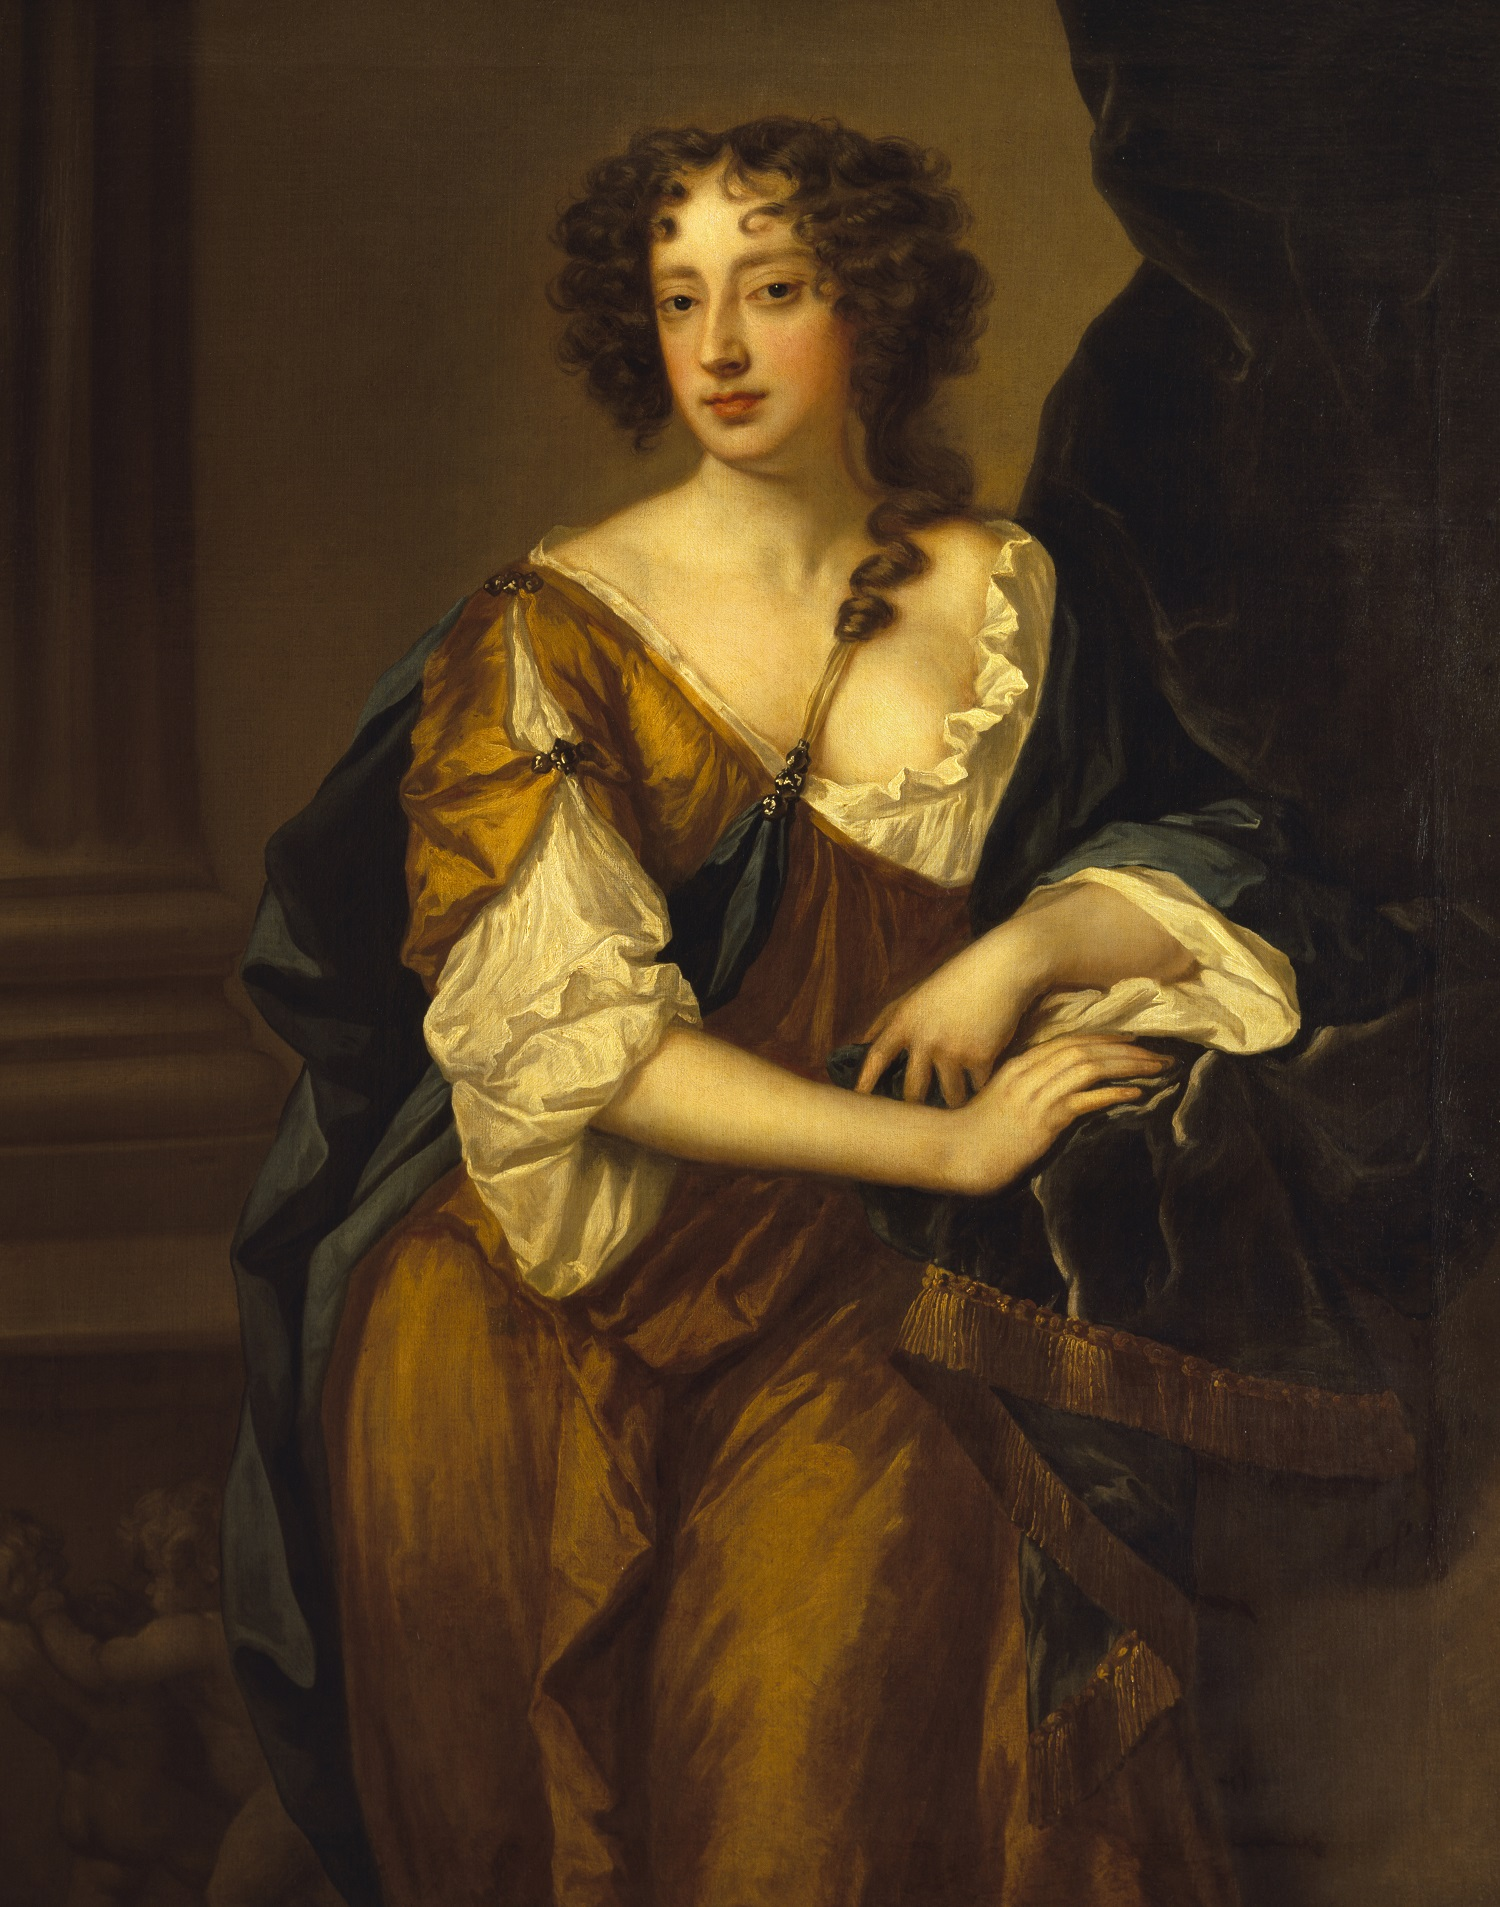 Lady Wriothesley, Duchess of Montagu, studio of Sir Peter Lely ©National Trust Images Derrick E. Witty